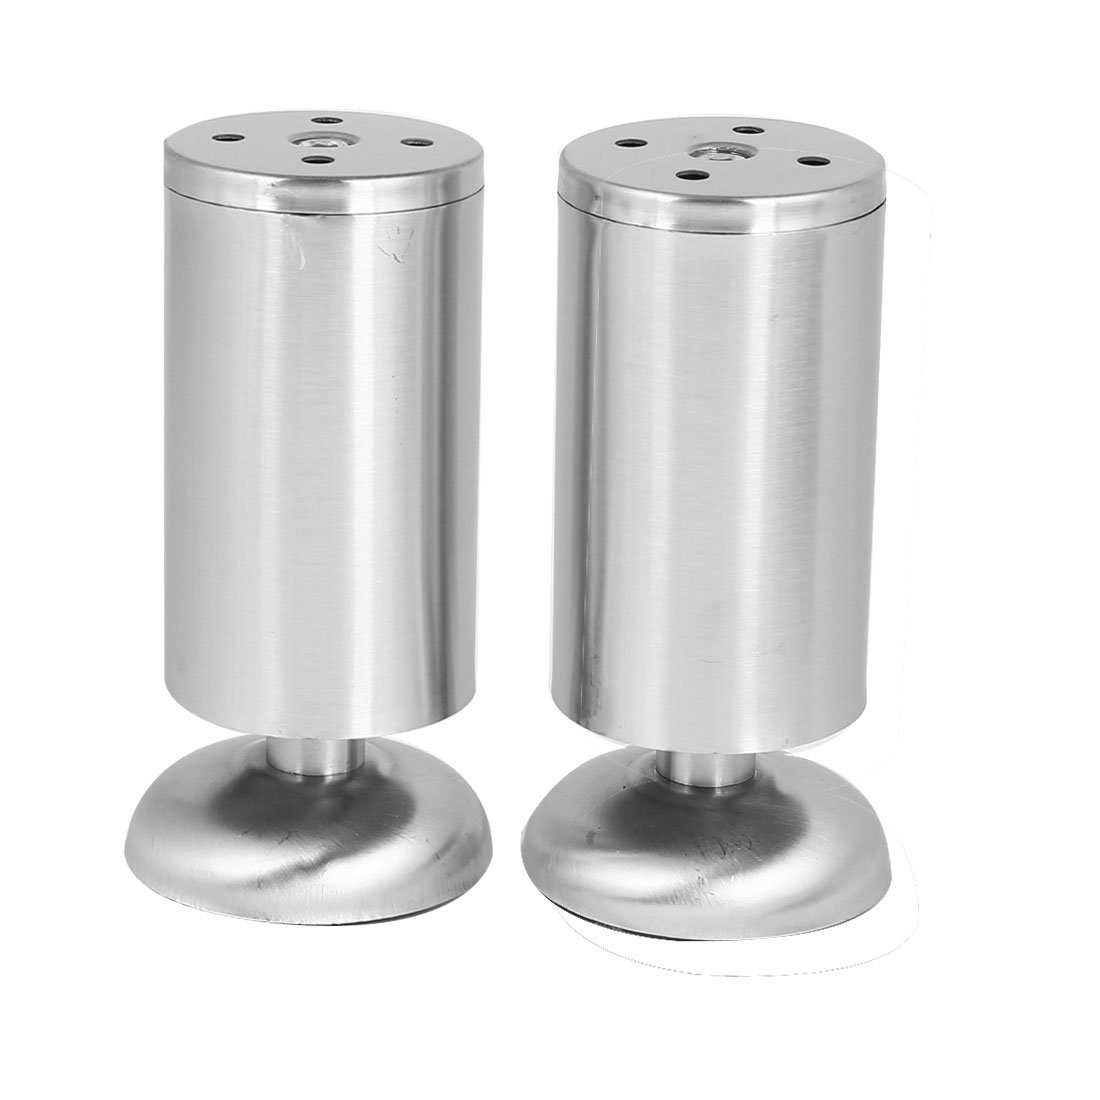 uxcell Furniture Cabinet Bed 50mmx120mm Round Stand Metal Adjustable Leg Feet 2pcs